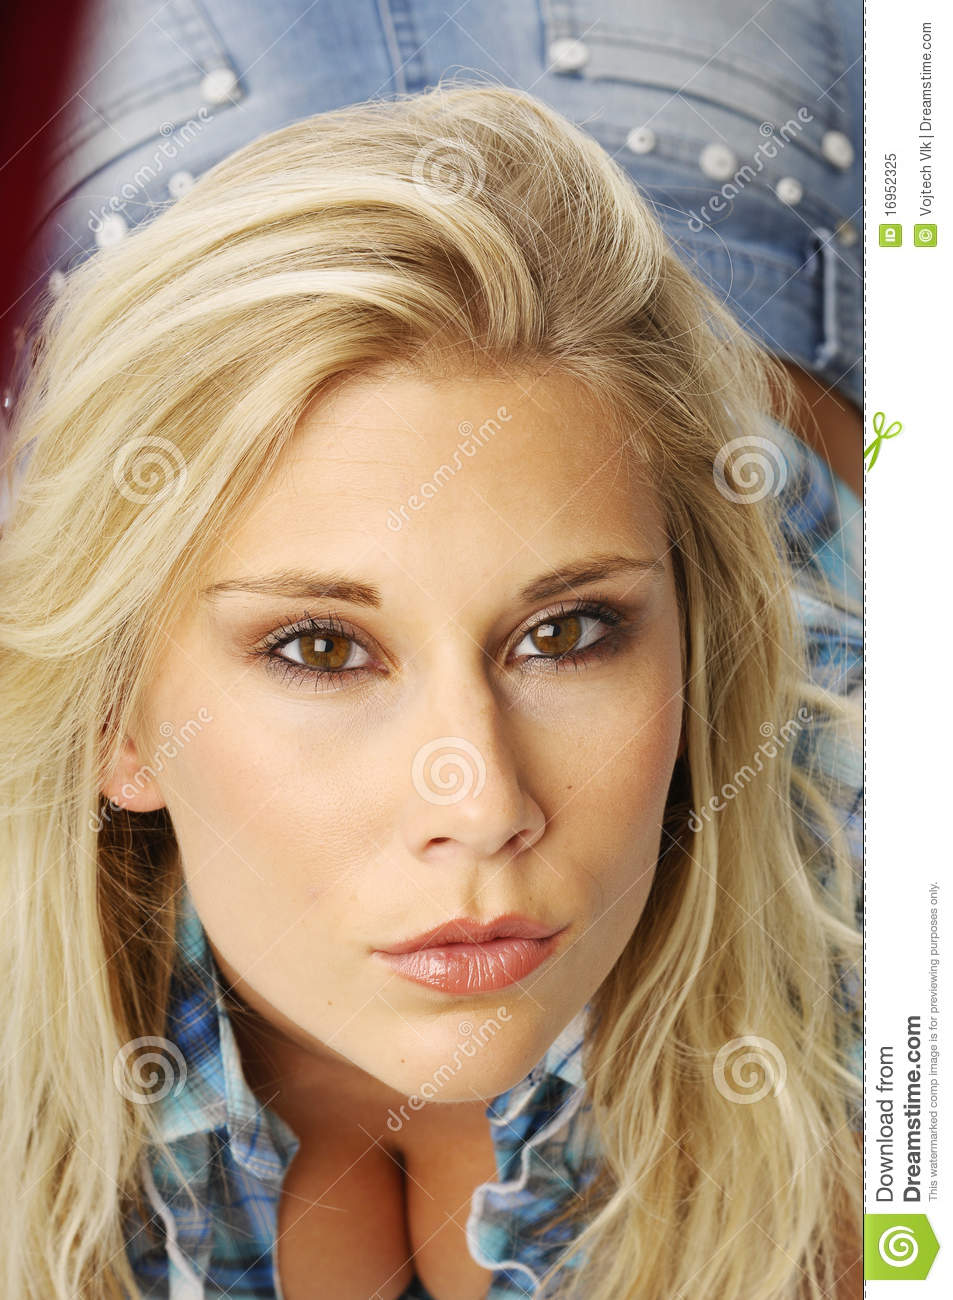 Blond Woman In Blouse Stock Image Image Of Slender Blonde 16952325